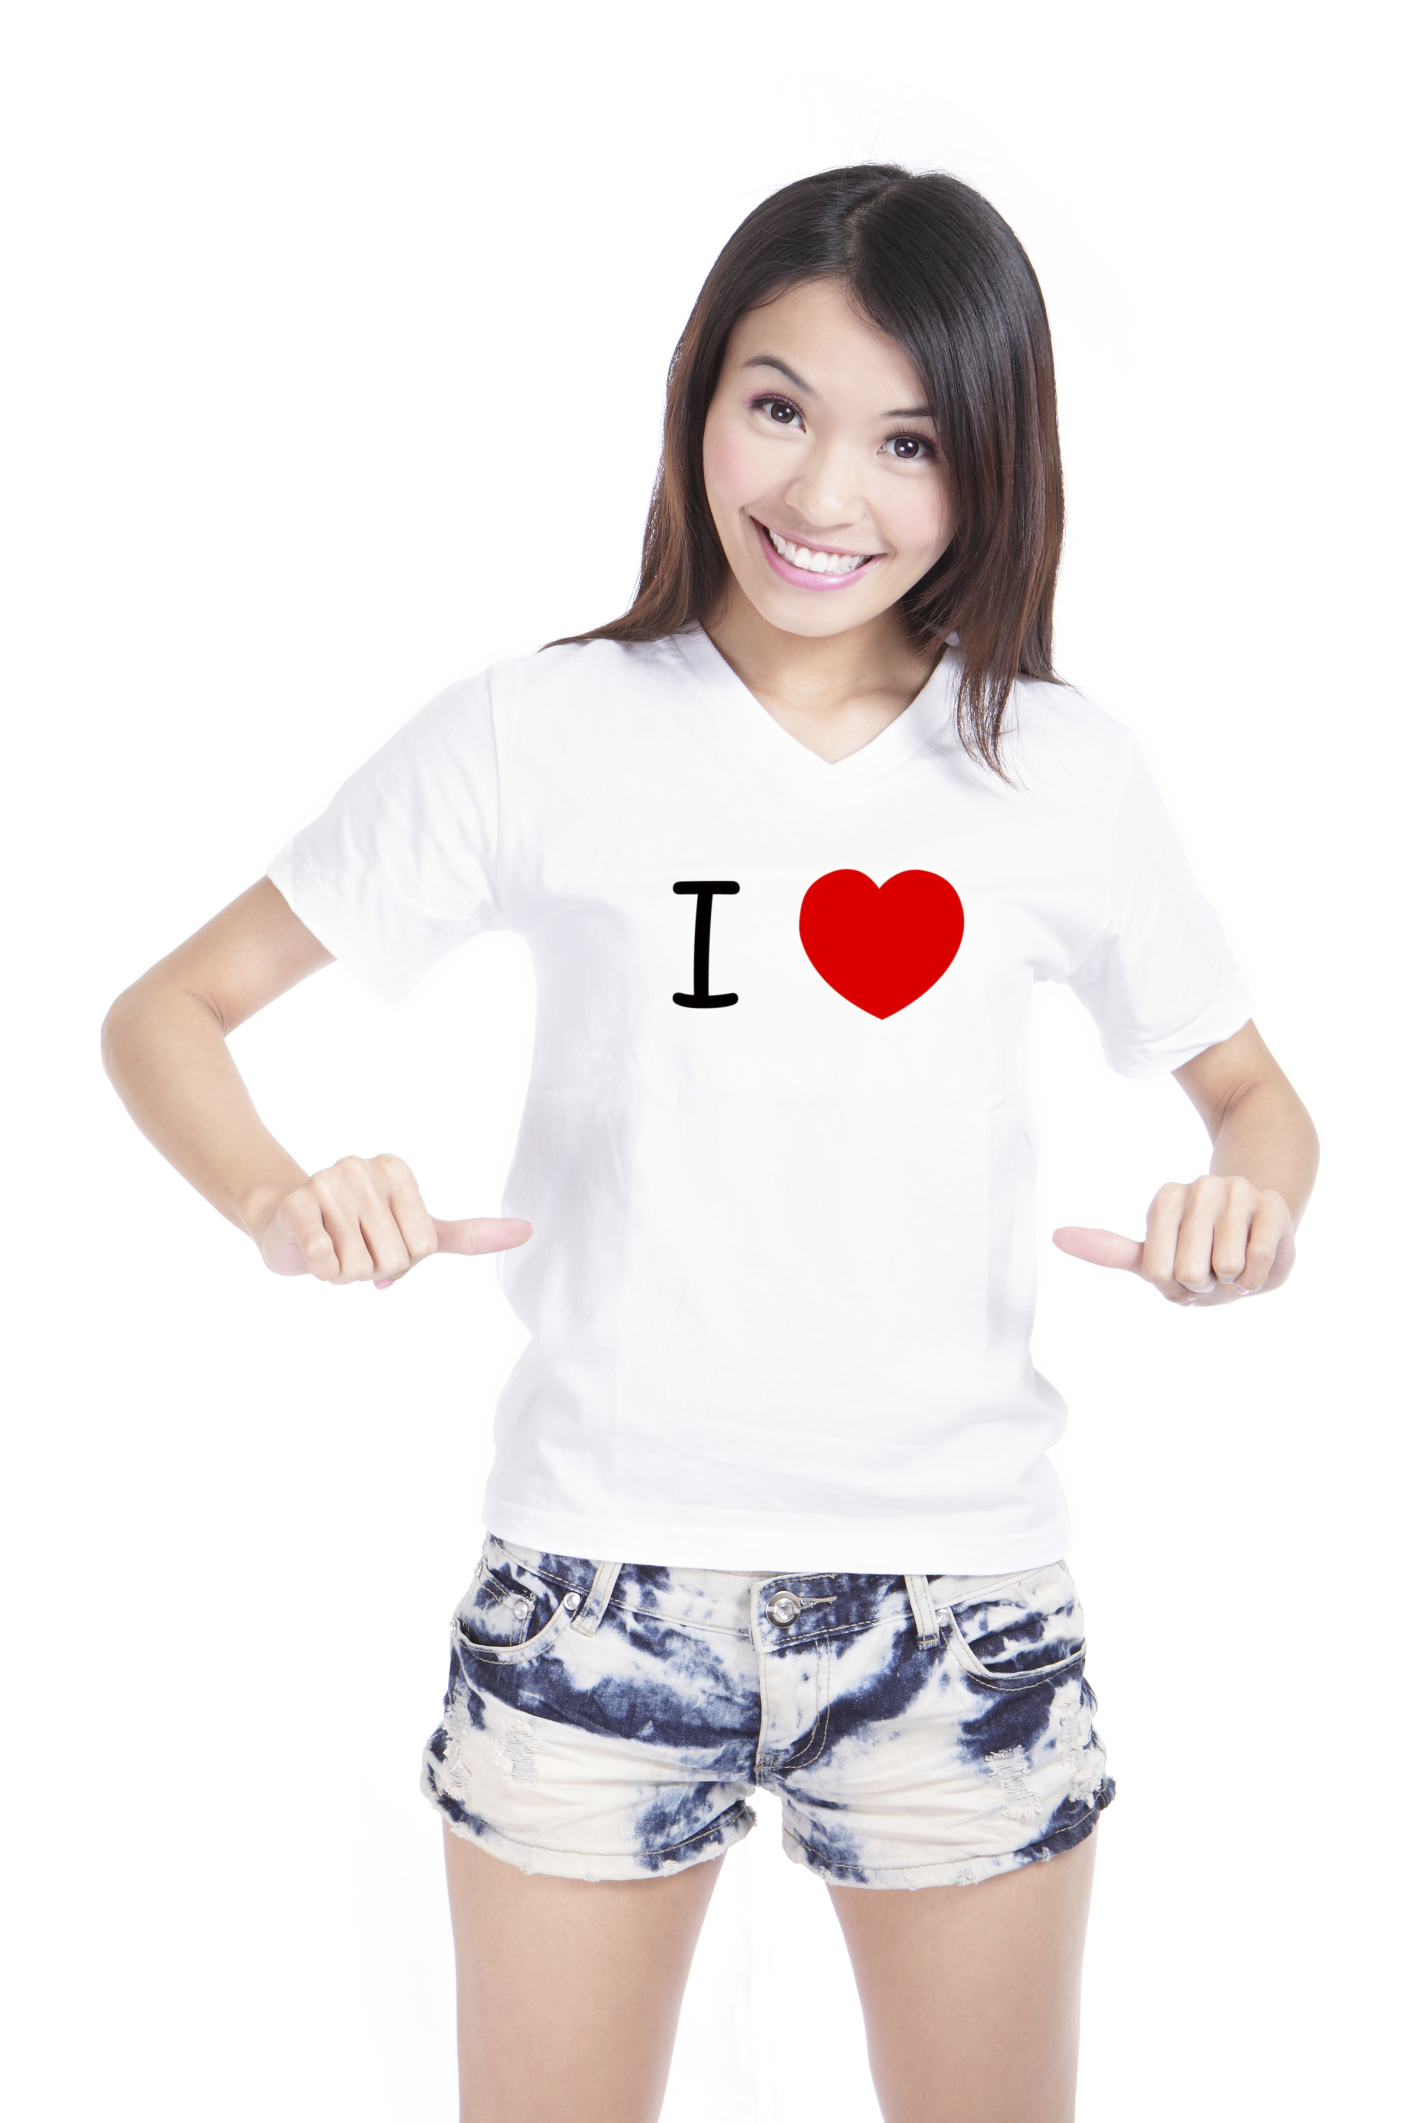 Girl Happy show white T-Shirt with Text (I love)